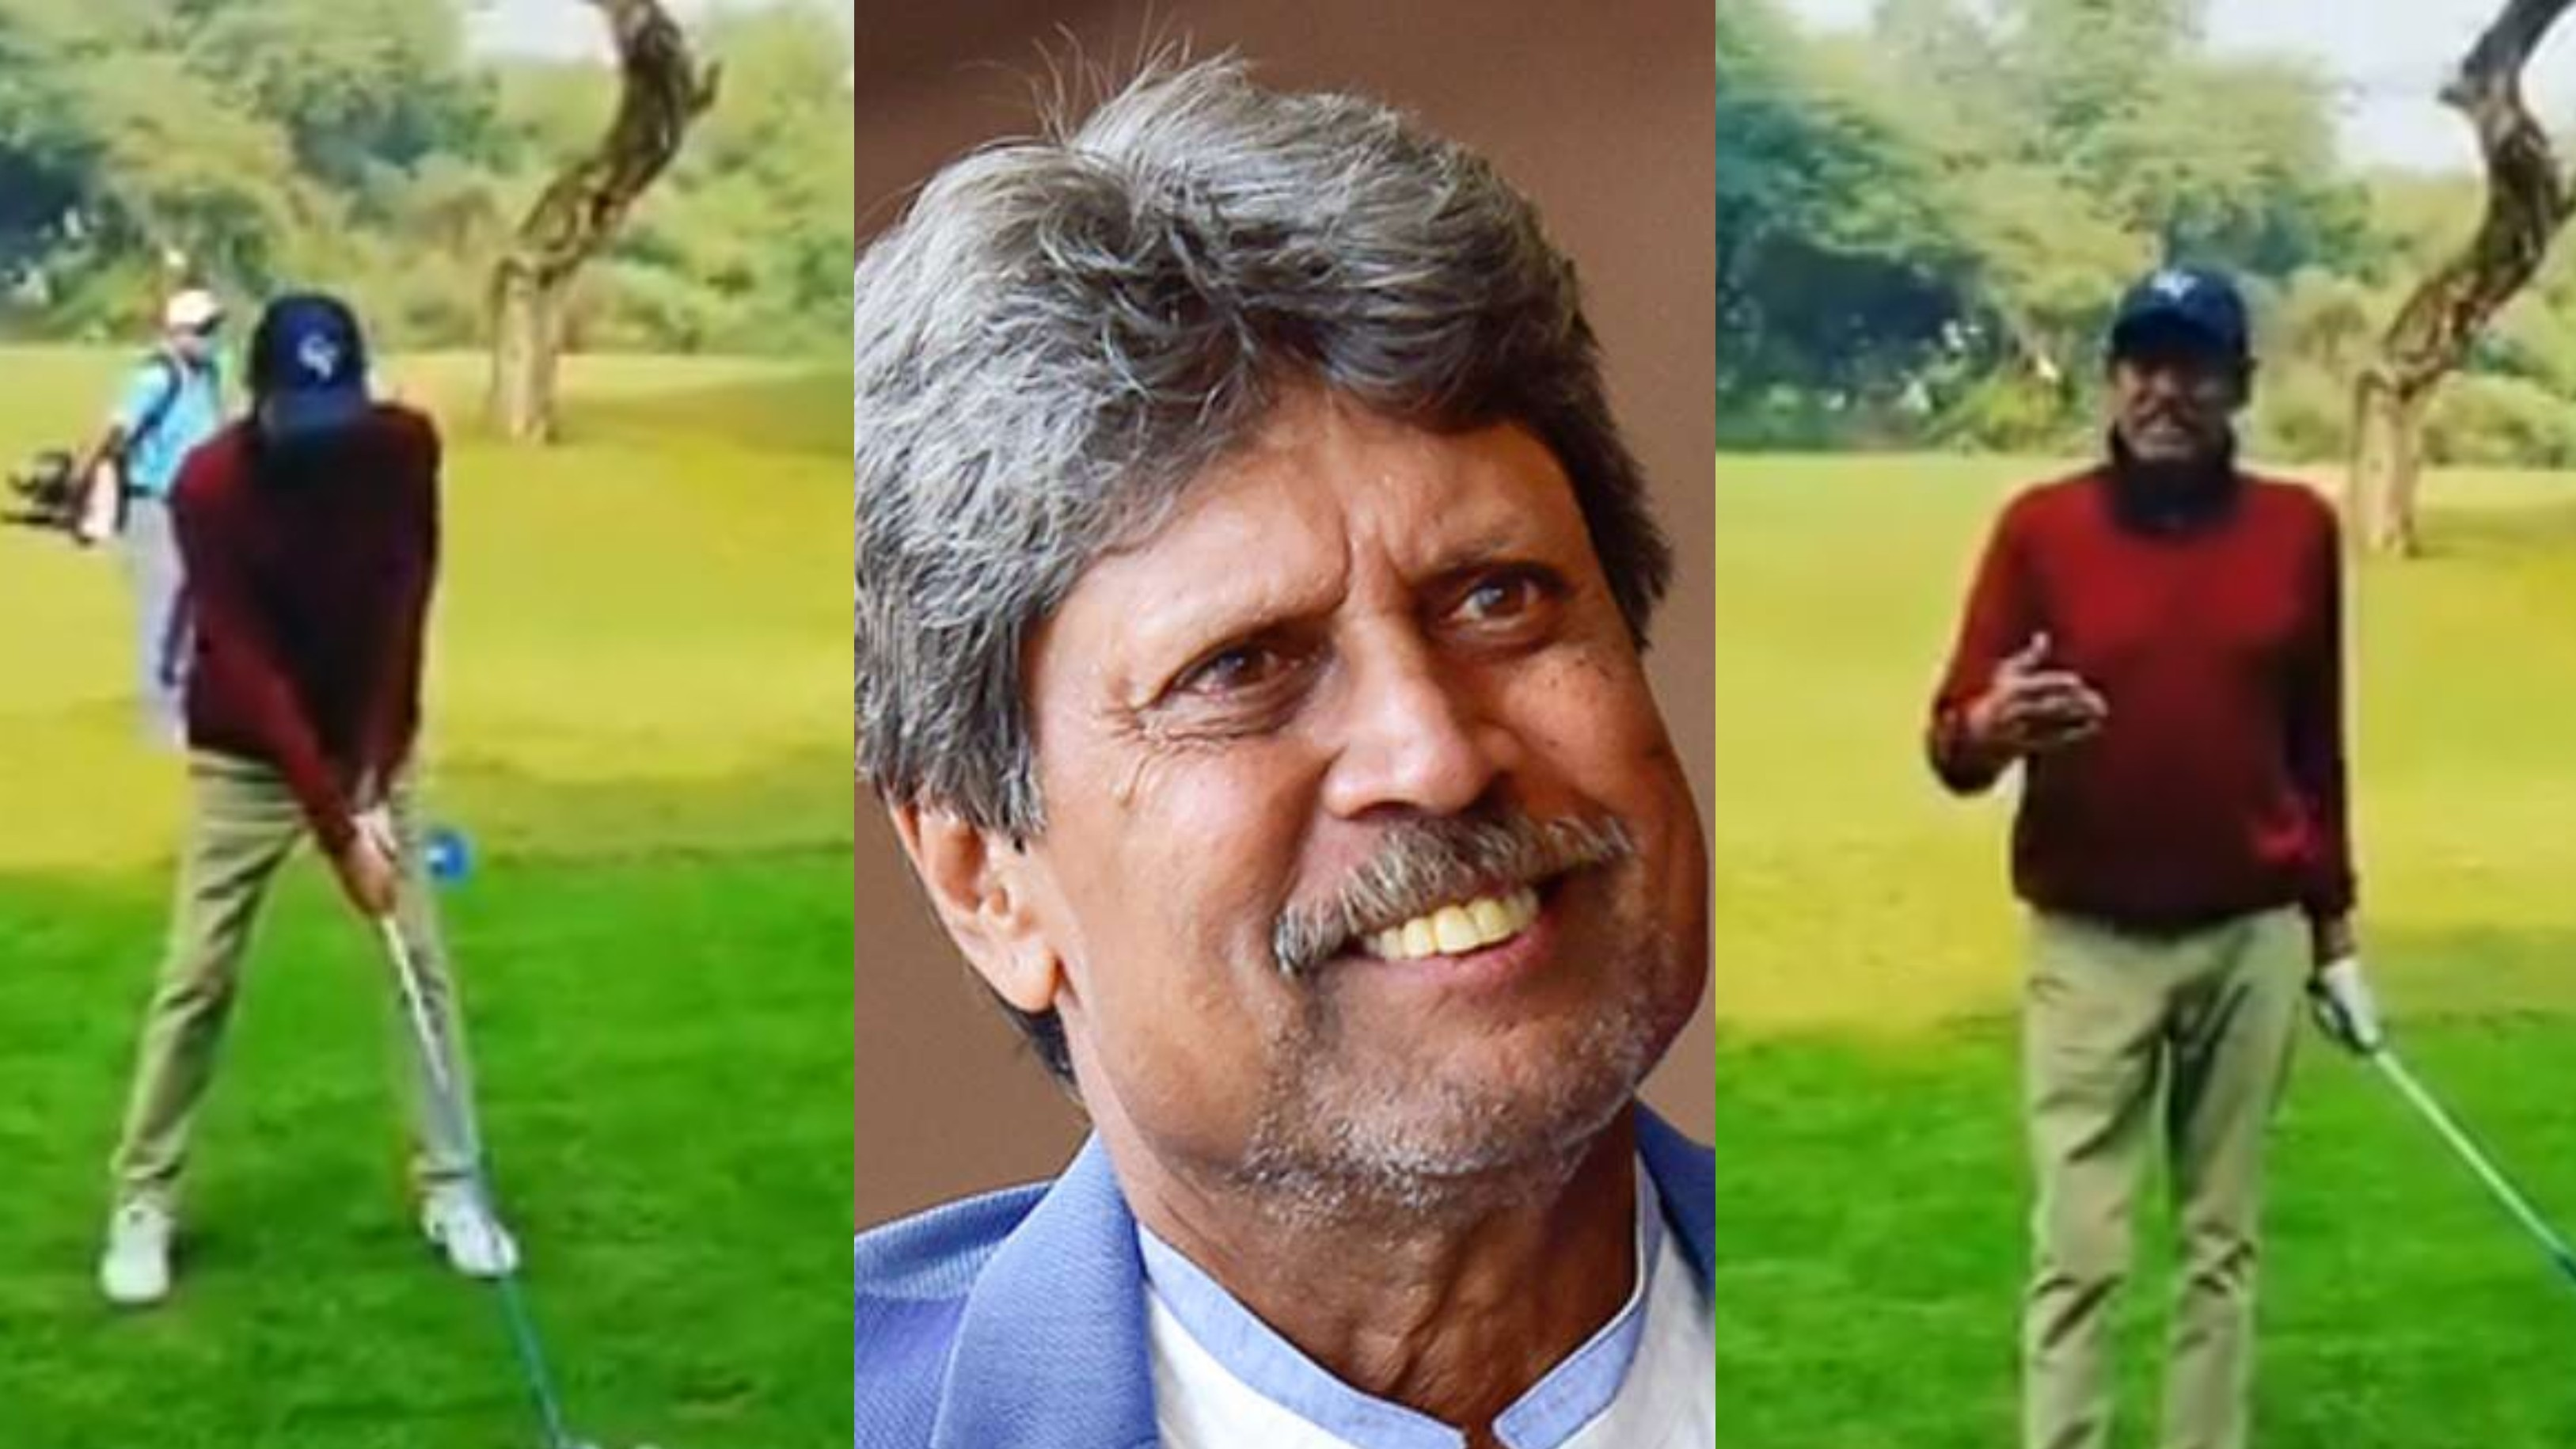 WATCH - Fit and healthy Kapil Dev enjoys golf with friends